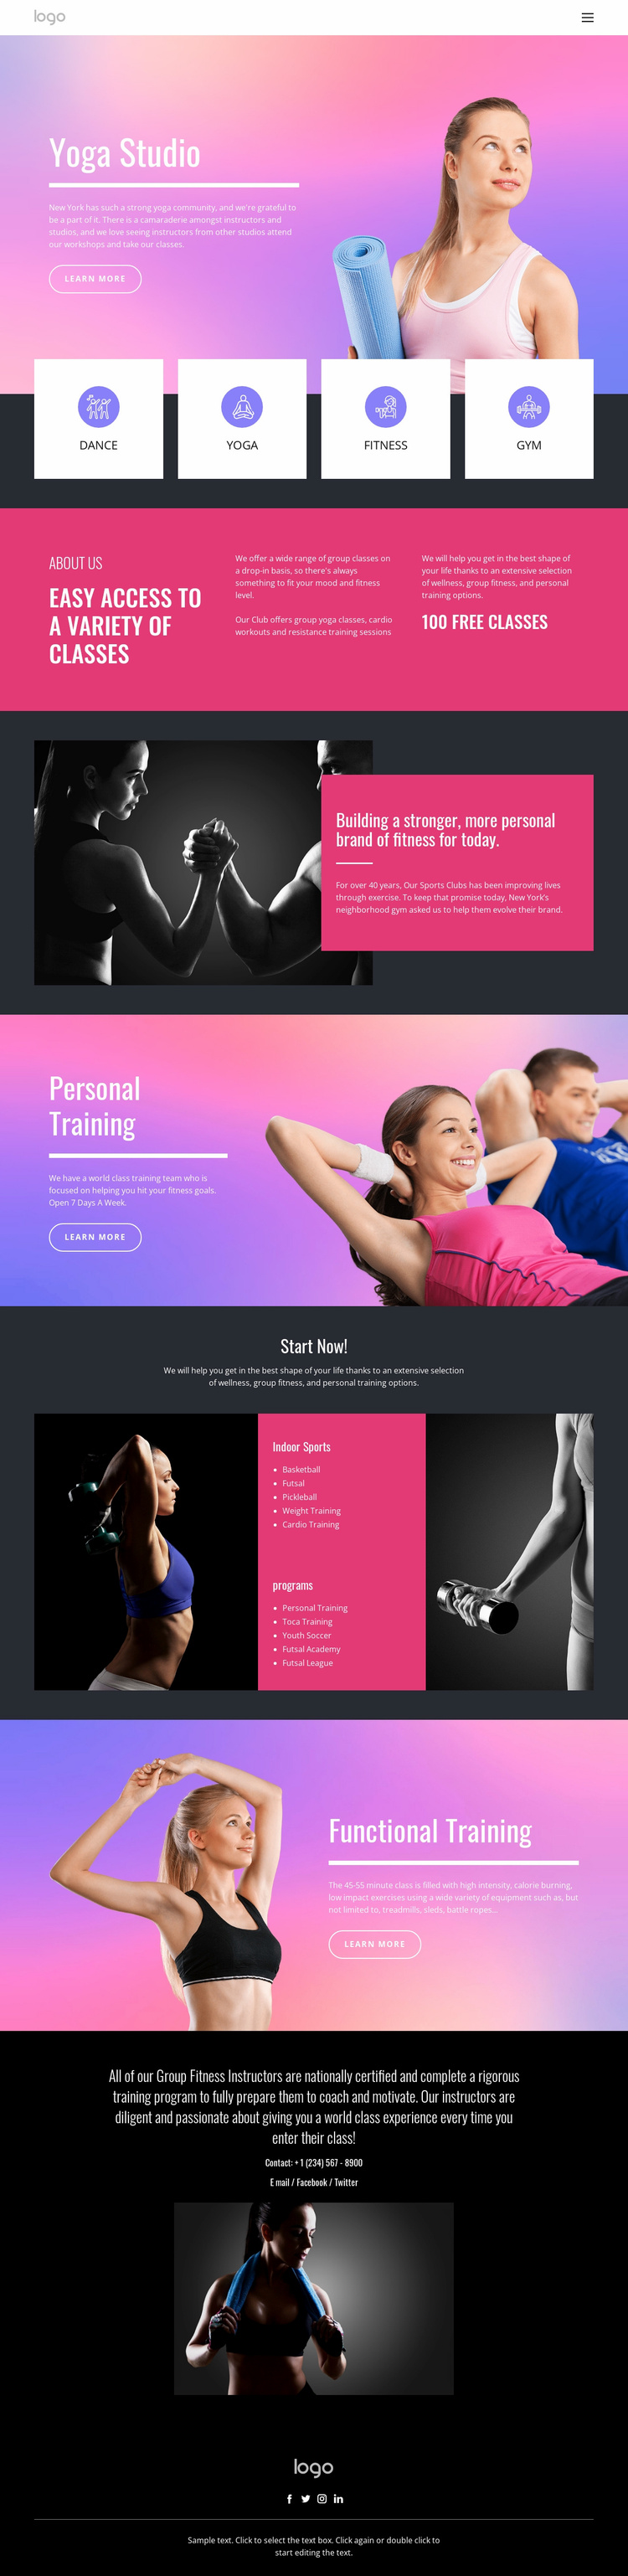 Wellness practice for self-inquiry Website Template